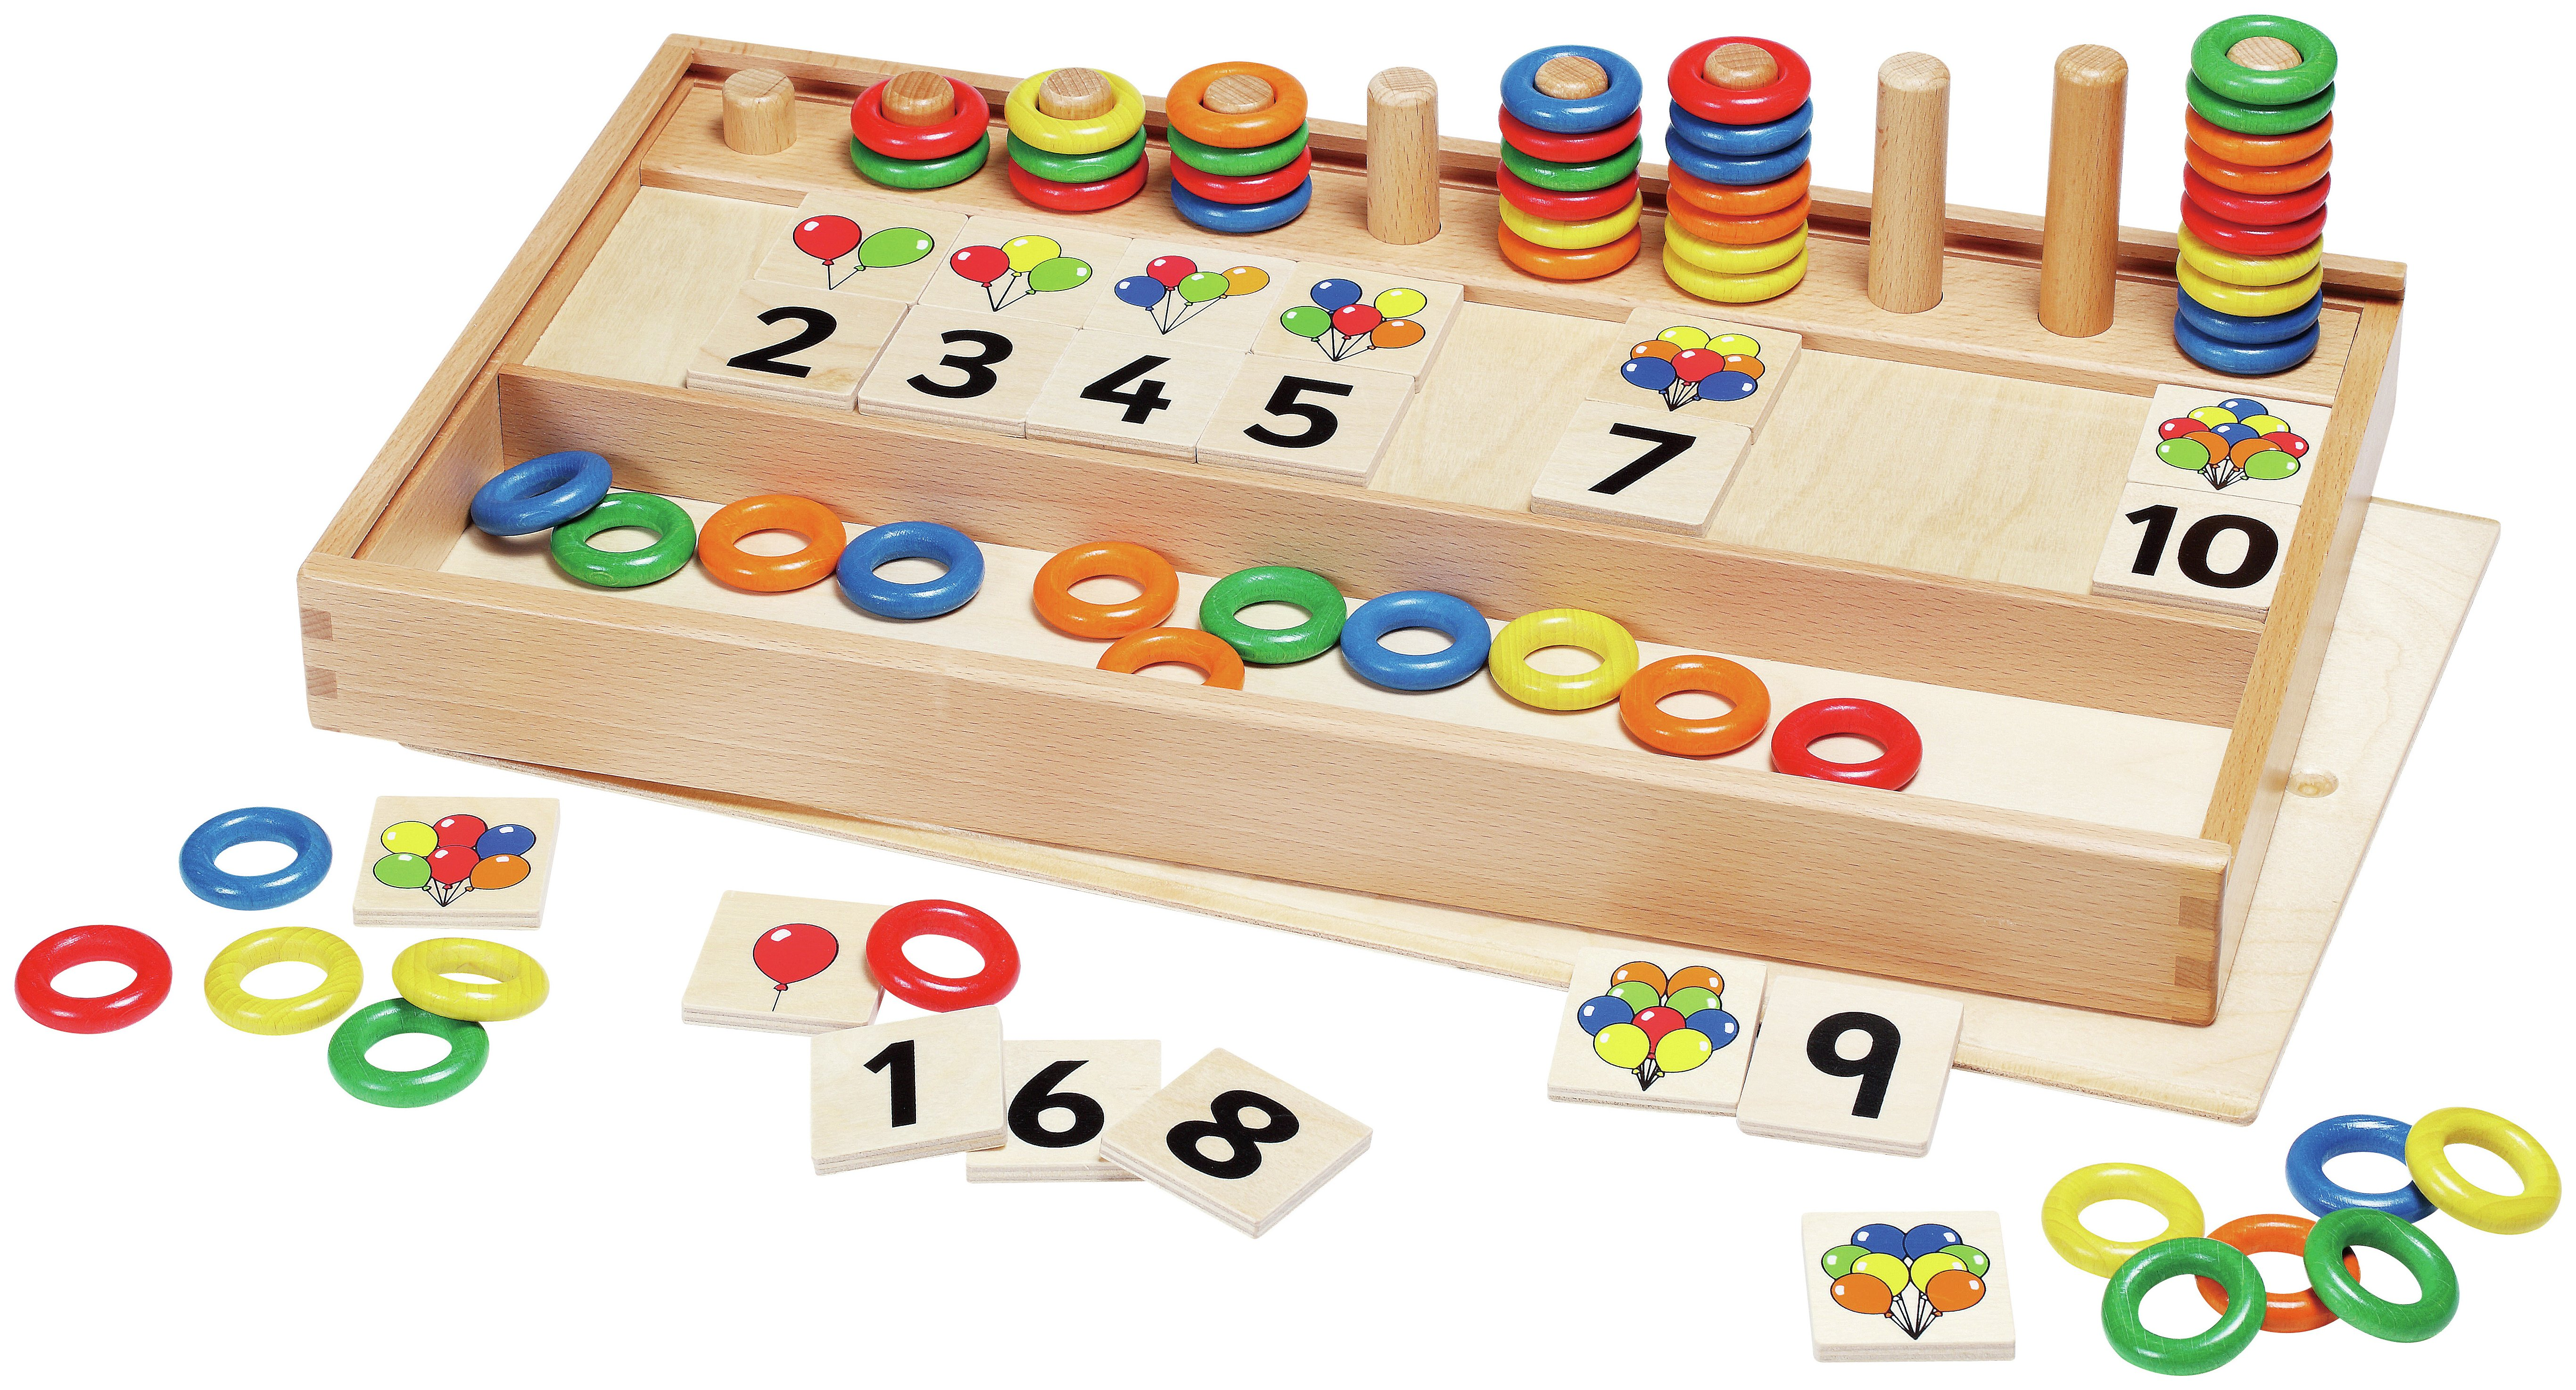 Image of GoGo Toys Wooden Balloons and Rings Game.